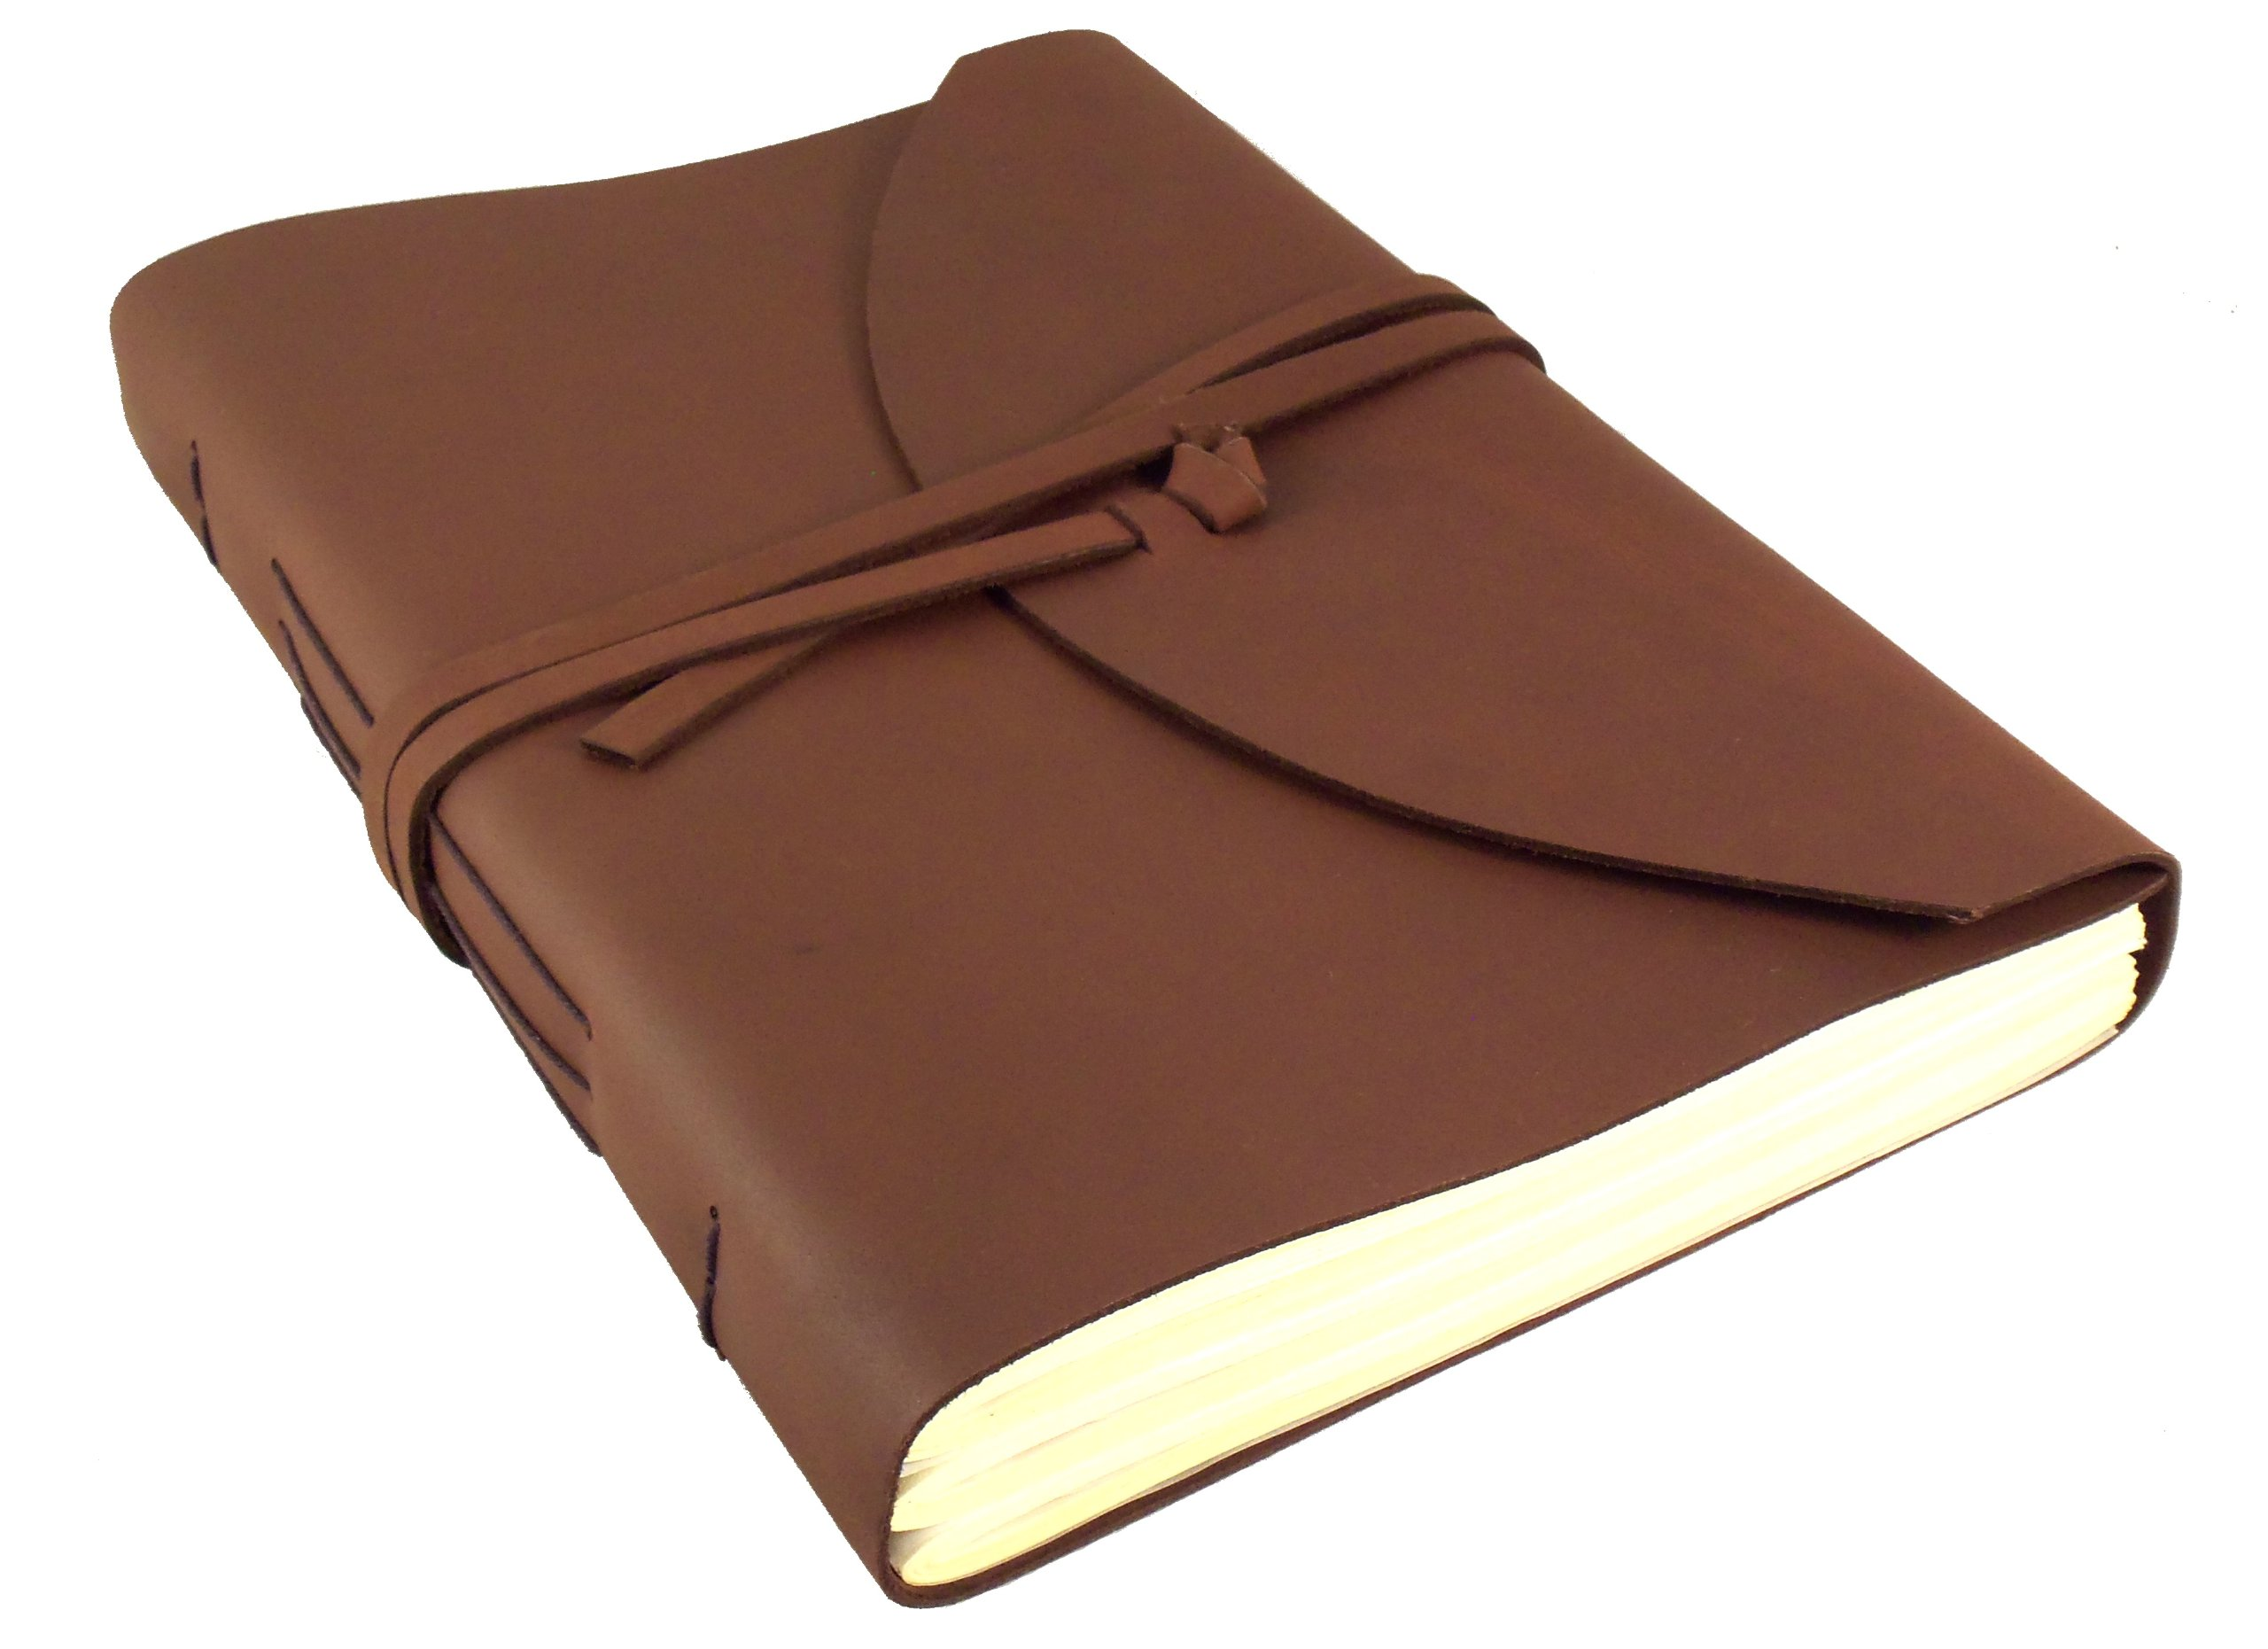 Large Genuine Leather Legacy Journal/Sketchbook with Gift Box - 400 Pages - 9'' x 12'' - Rich Dark Brown by Rustic Ridge Leather